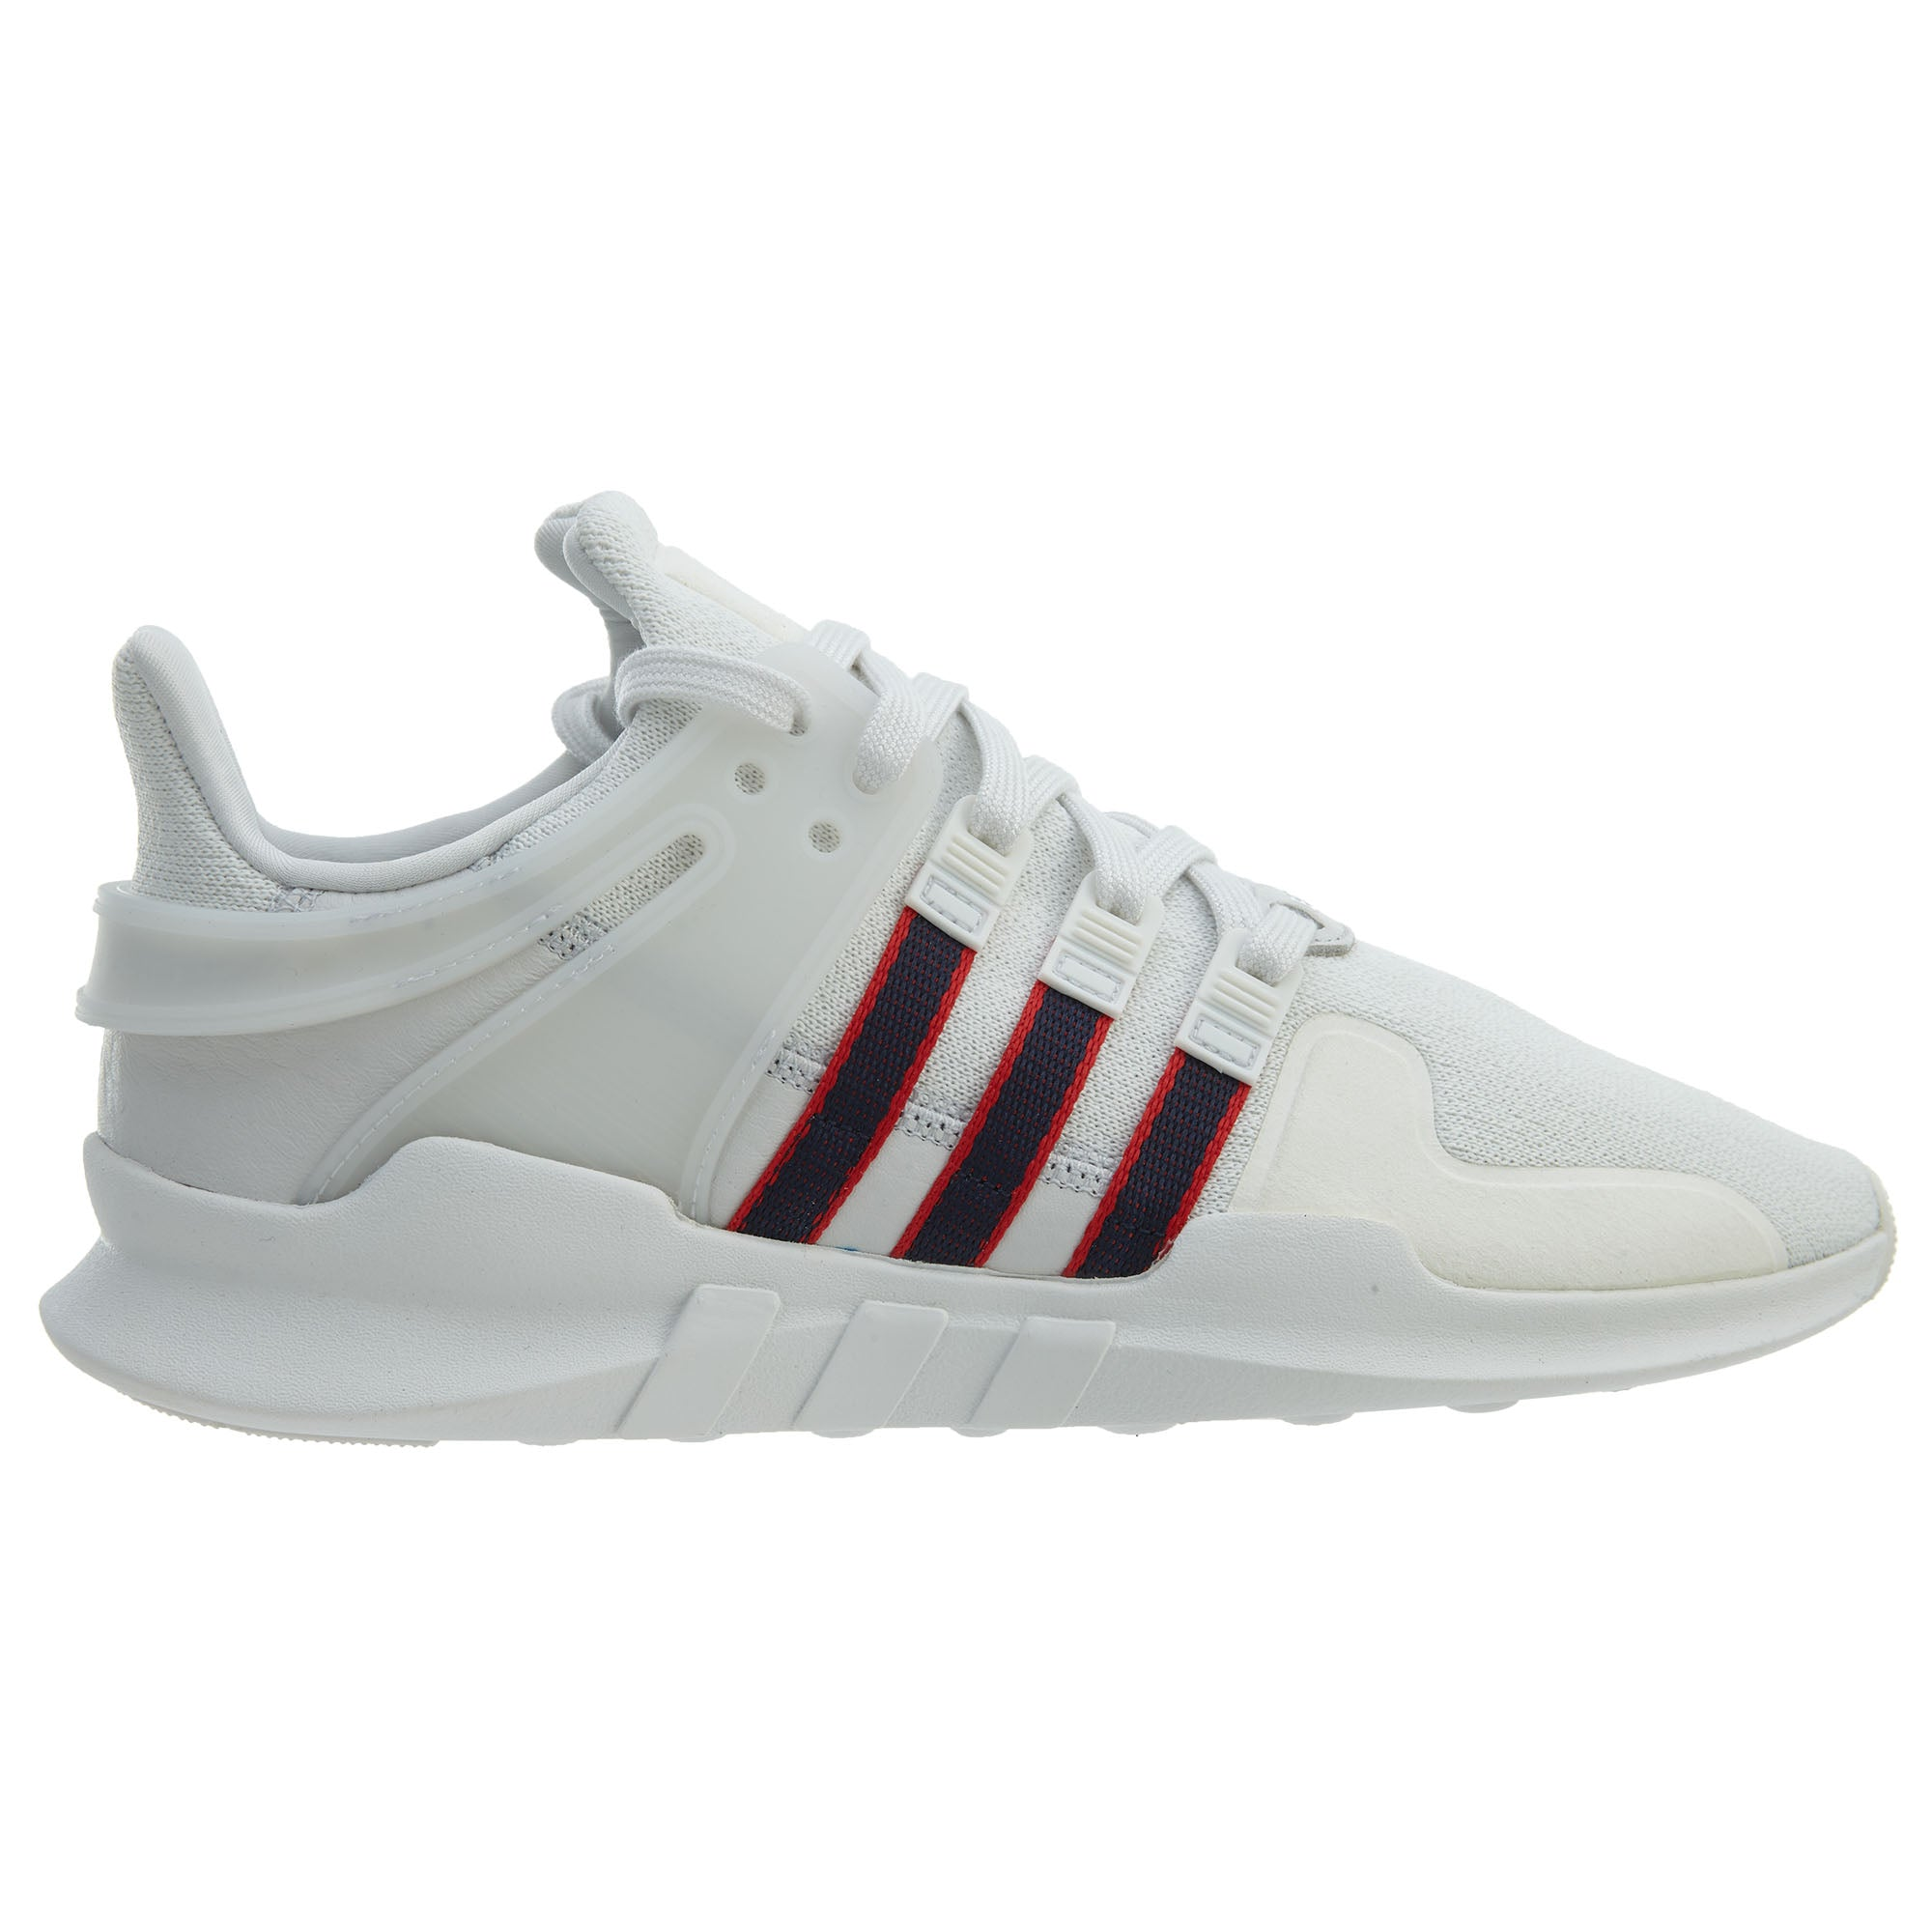 Adidas Eqt Support Adv Mens Style : Bb6778